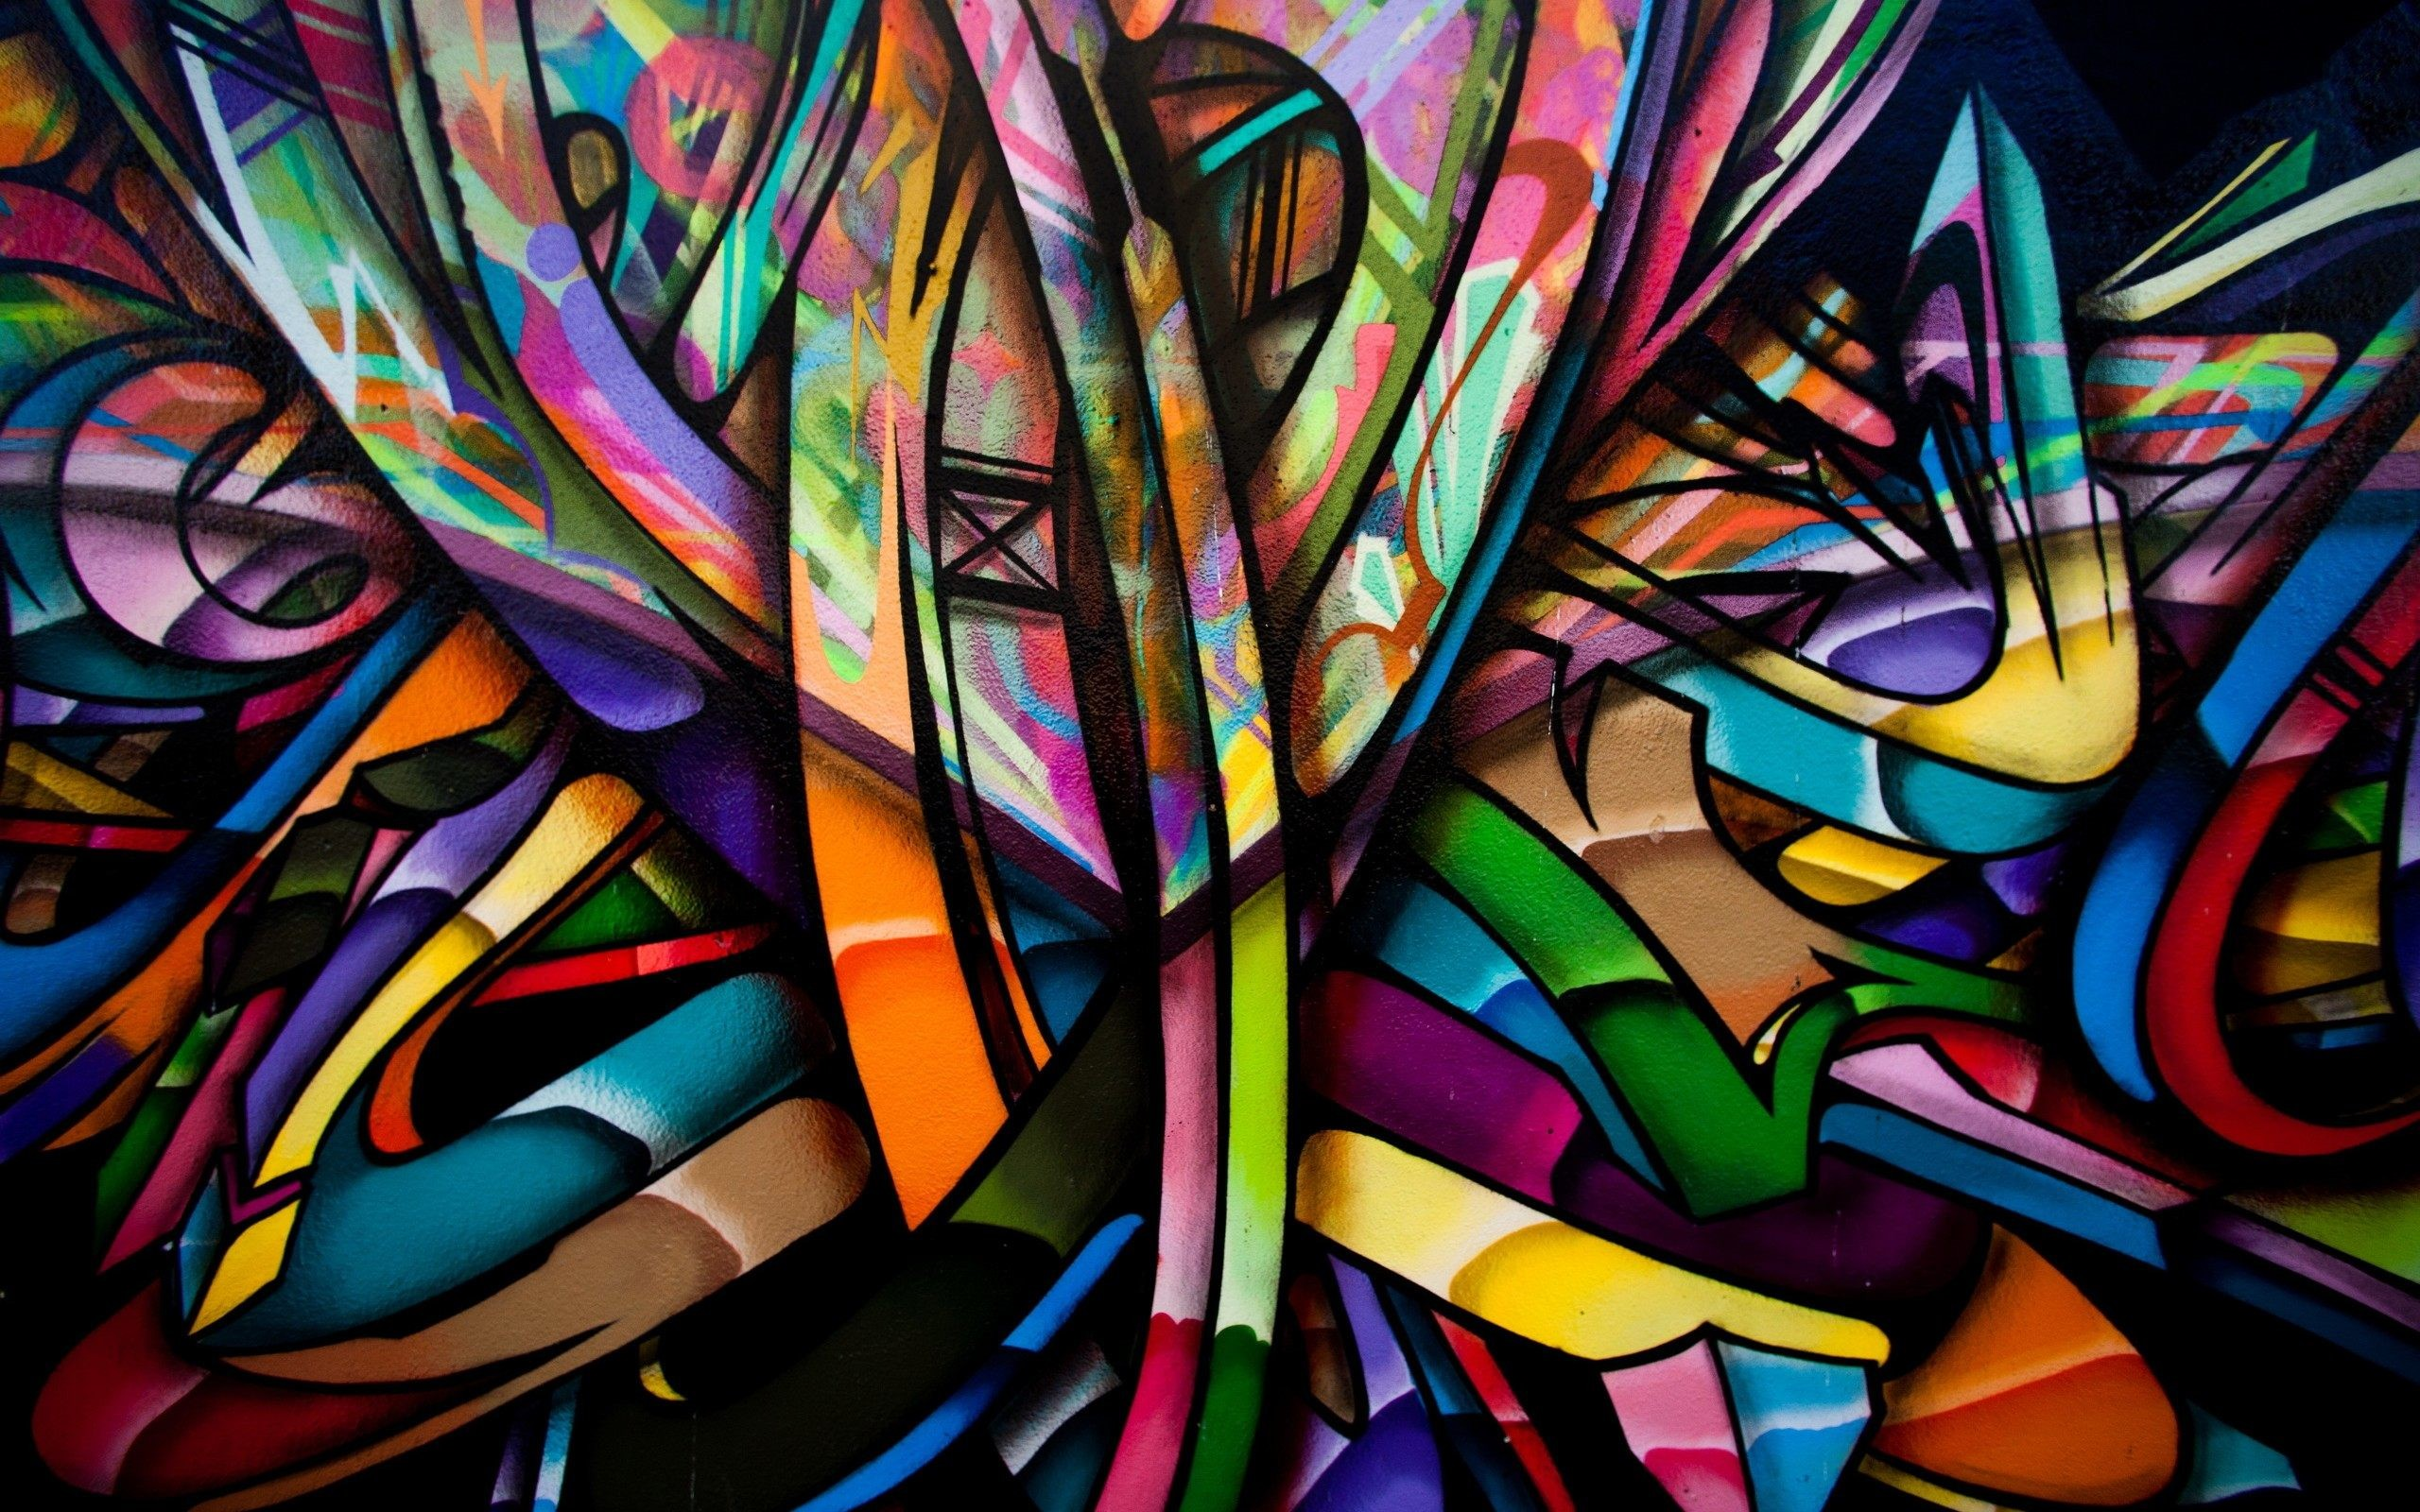 graffiti wallpaper hd backgrounds images | sharovarka | Pinterest | Hd  backgrounds, Graffiti wallpaper and Background images